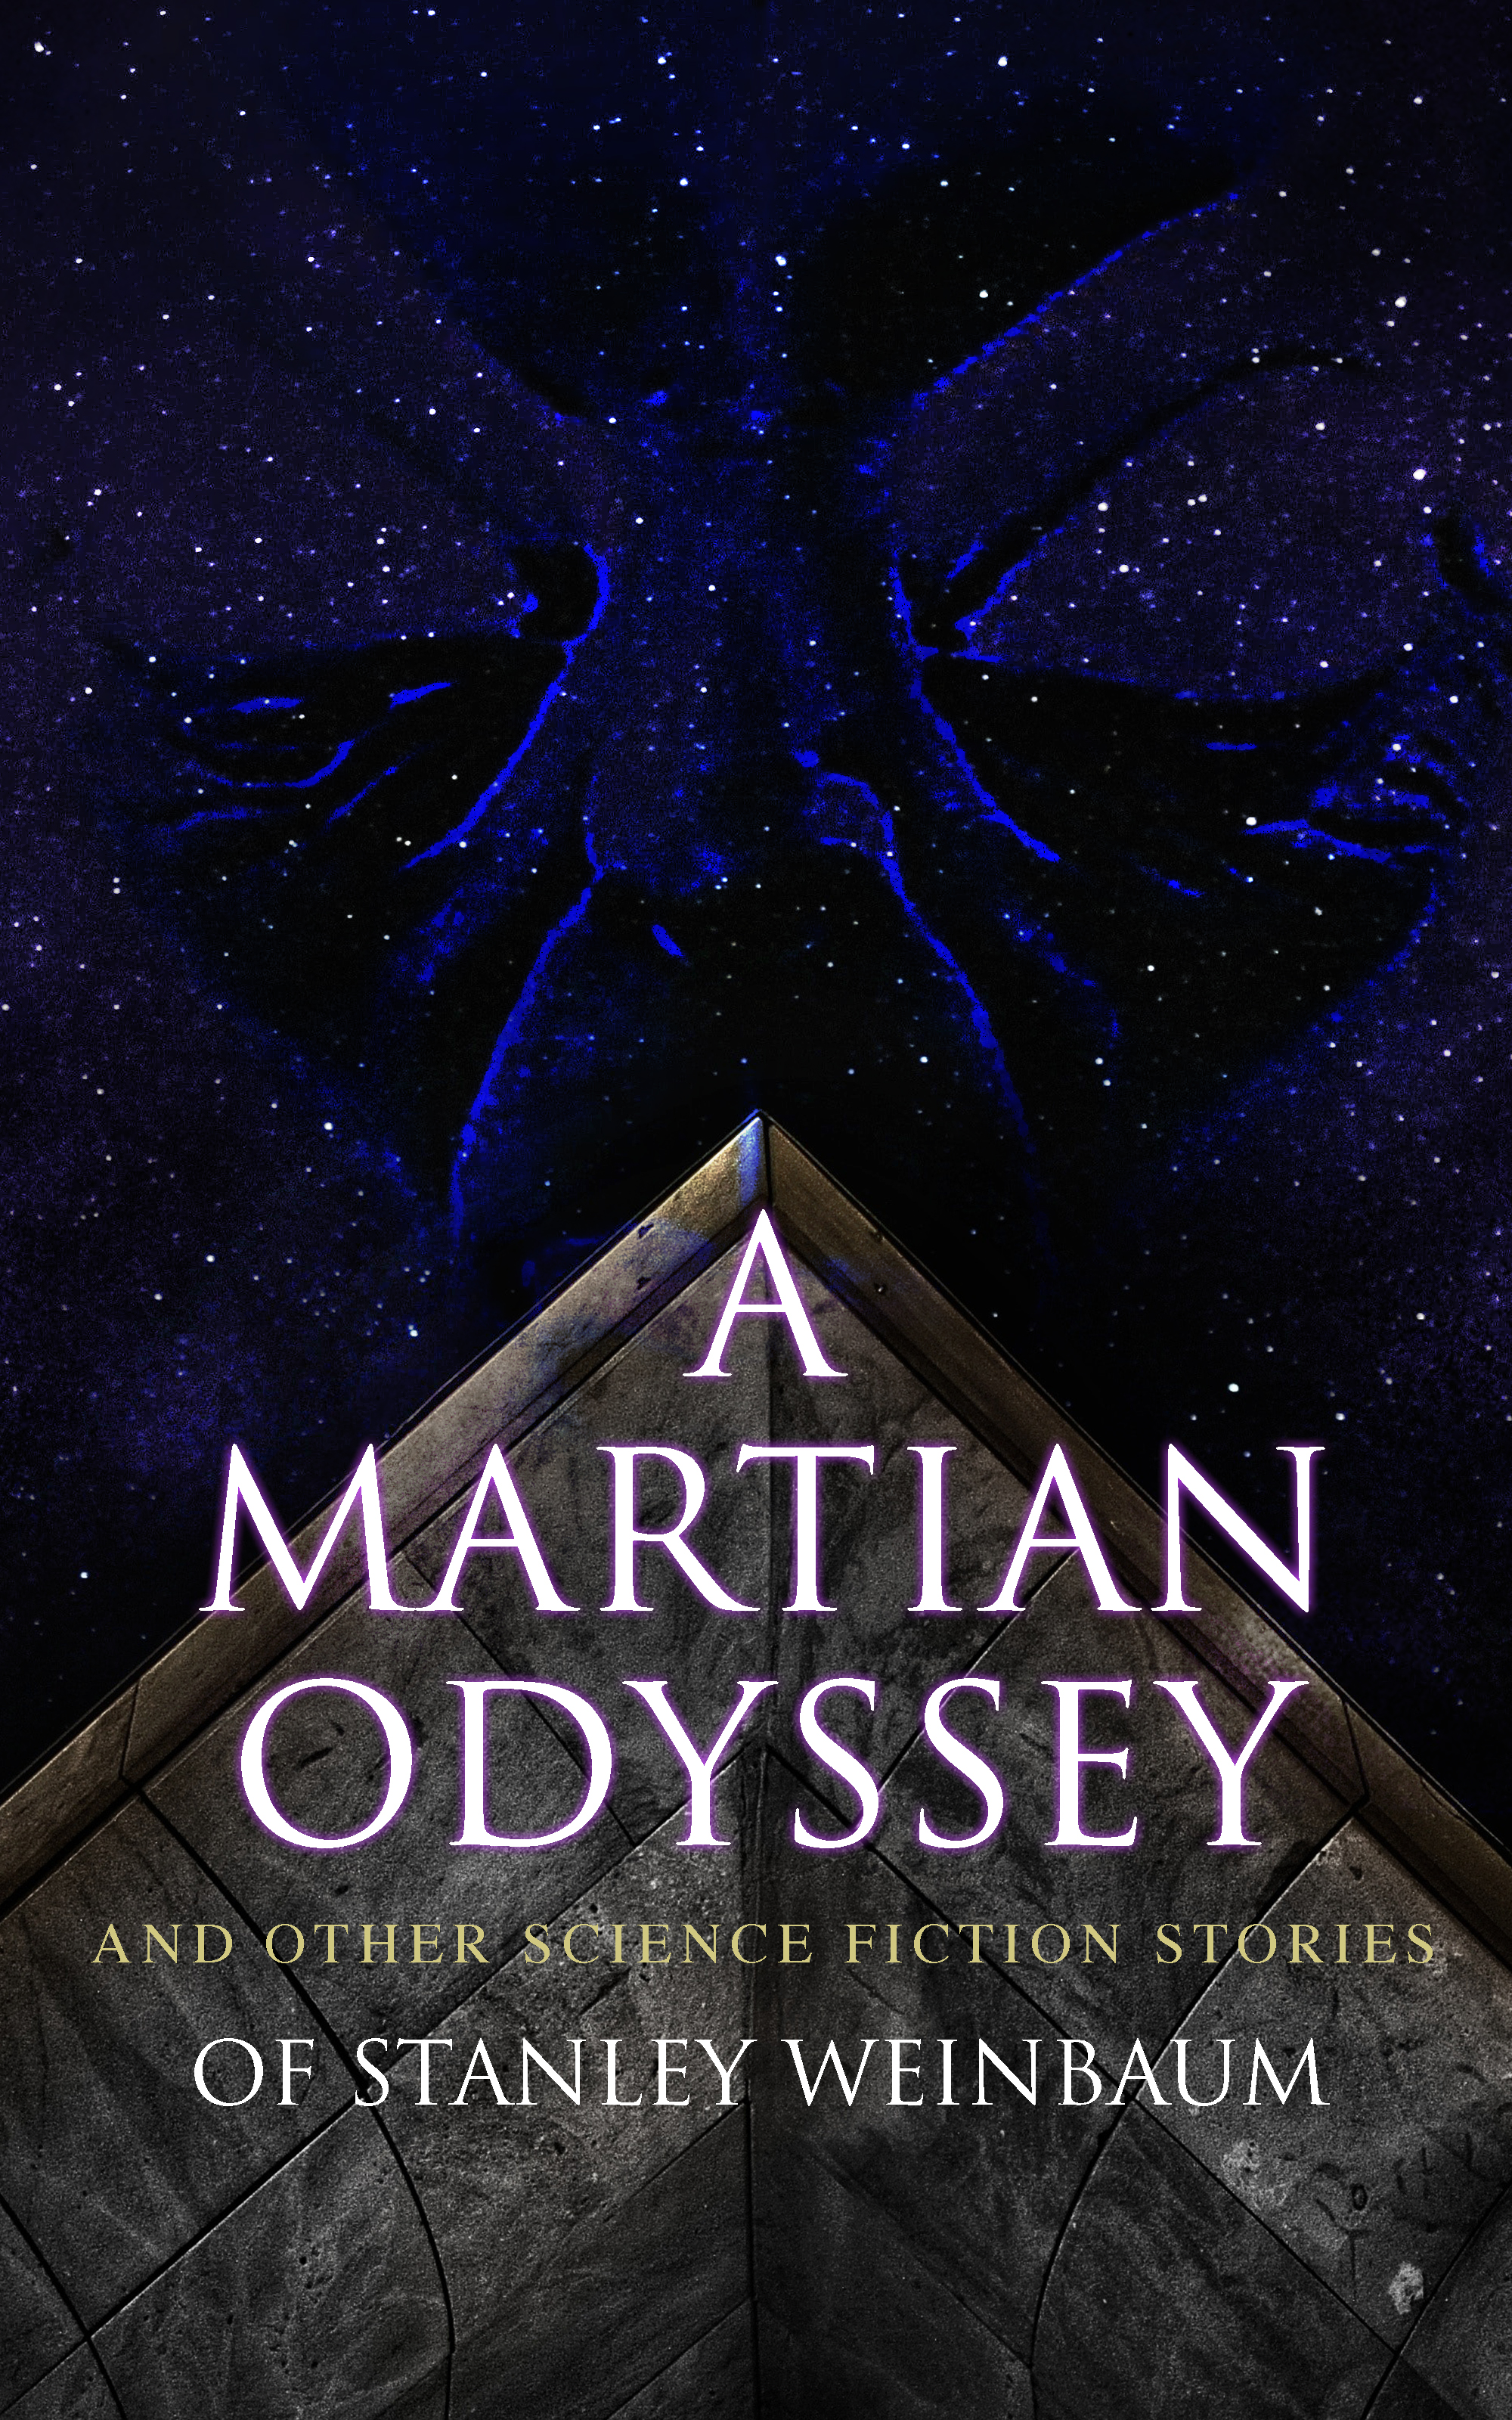 Stanley G. Weinbaum A Martian Odyssey and Other Science Fiction Stories of Stanley Weinbaum earth alert and other science fiction tales